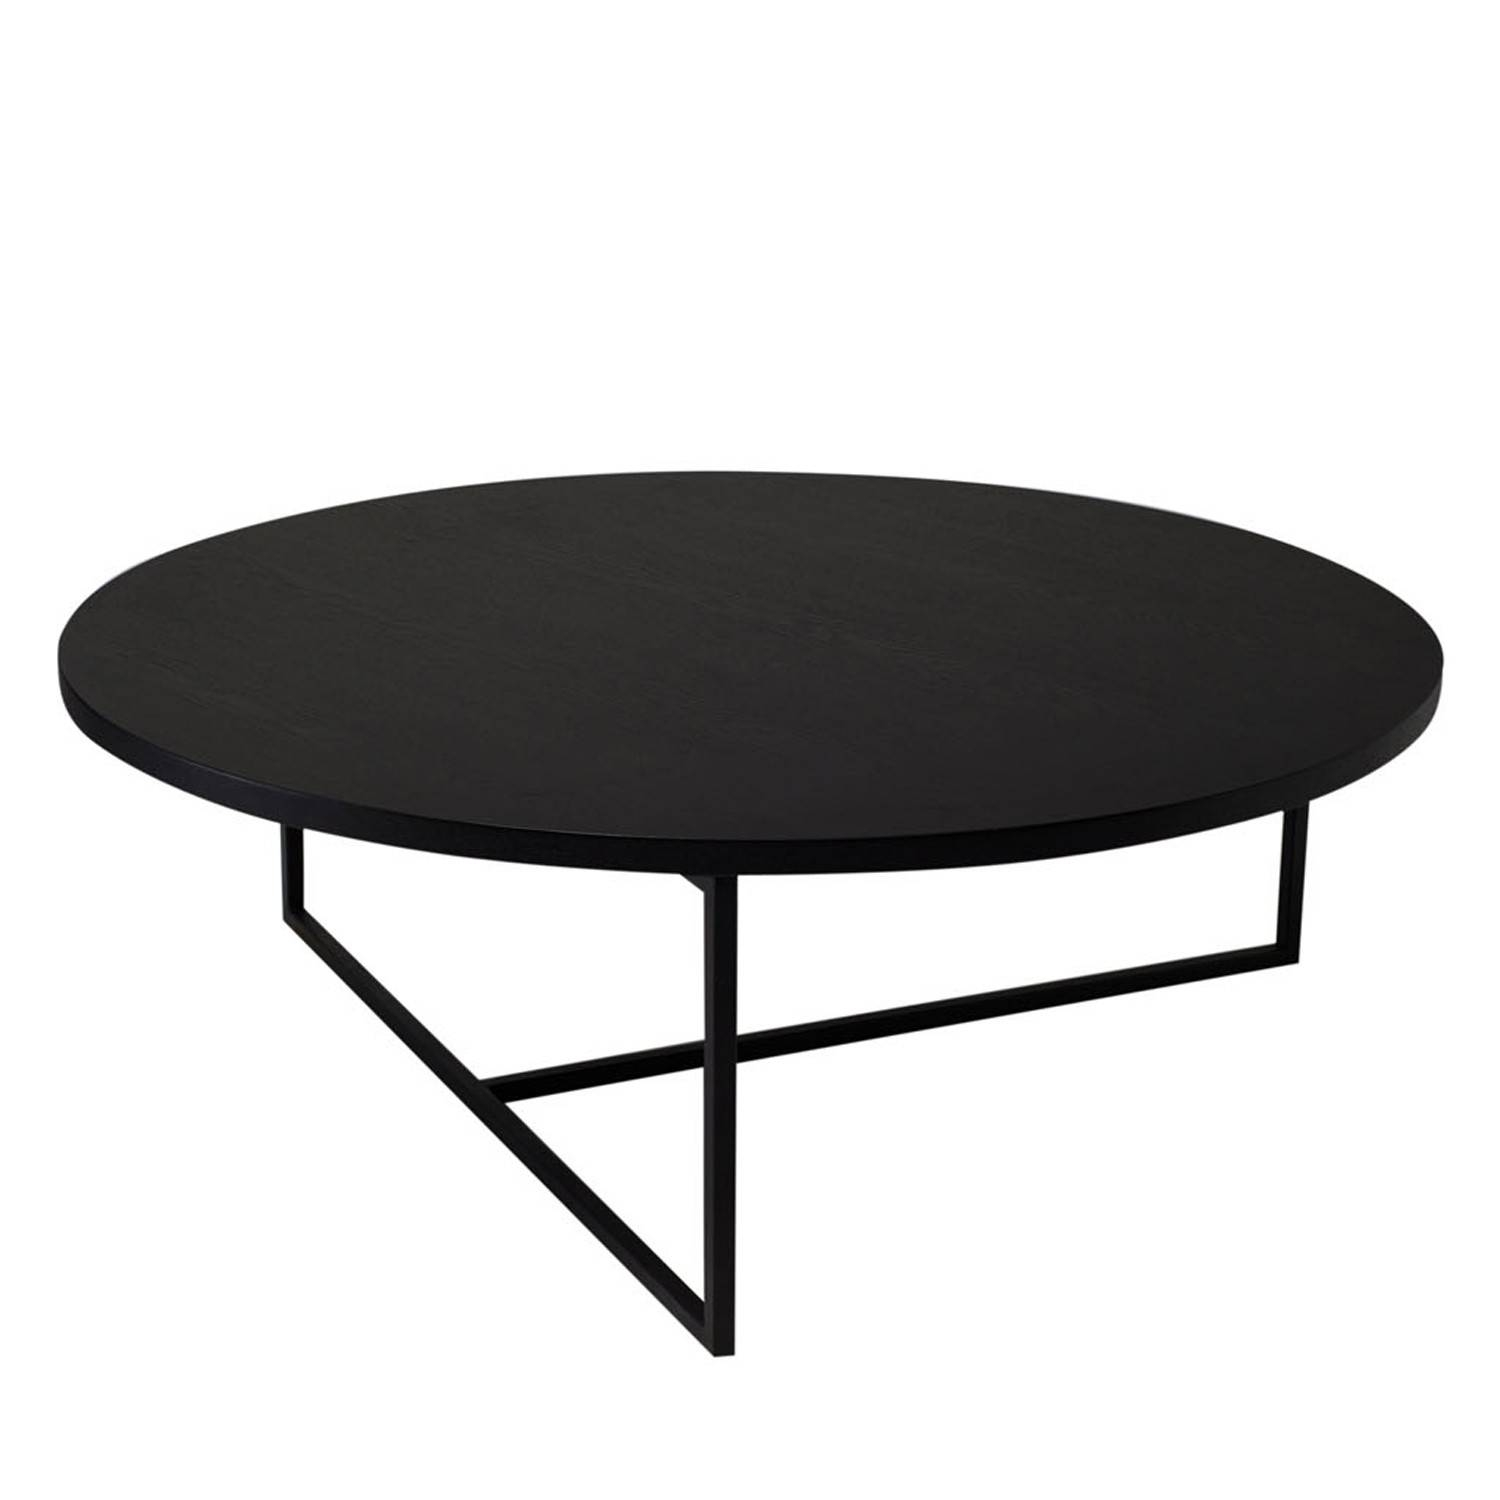 Round Black Coffee Tables - Starrkingschool inside High Quality Coffee Tables (Image 25 of 30)